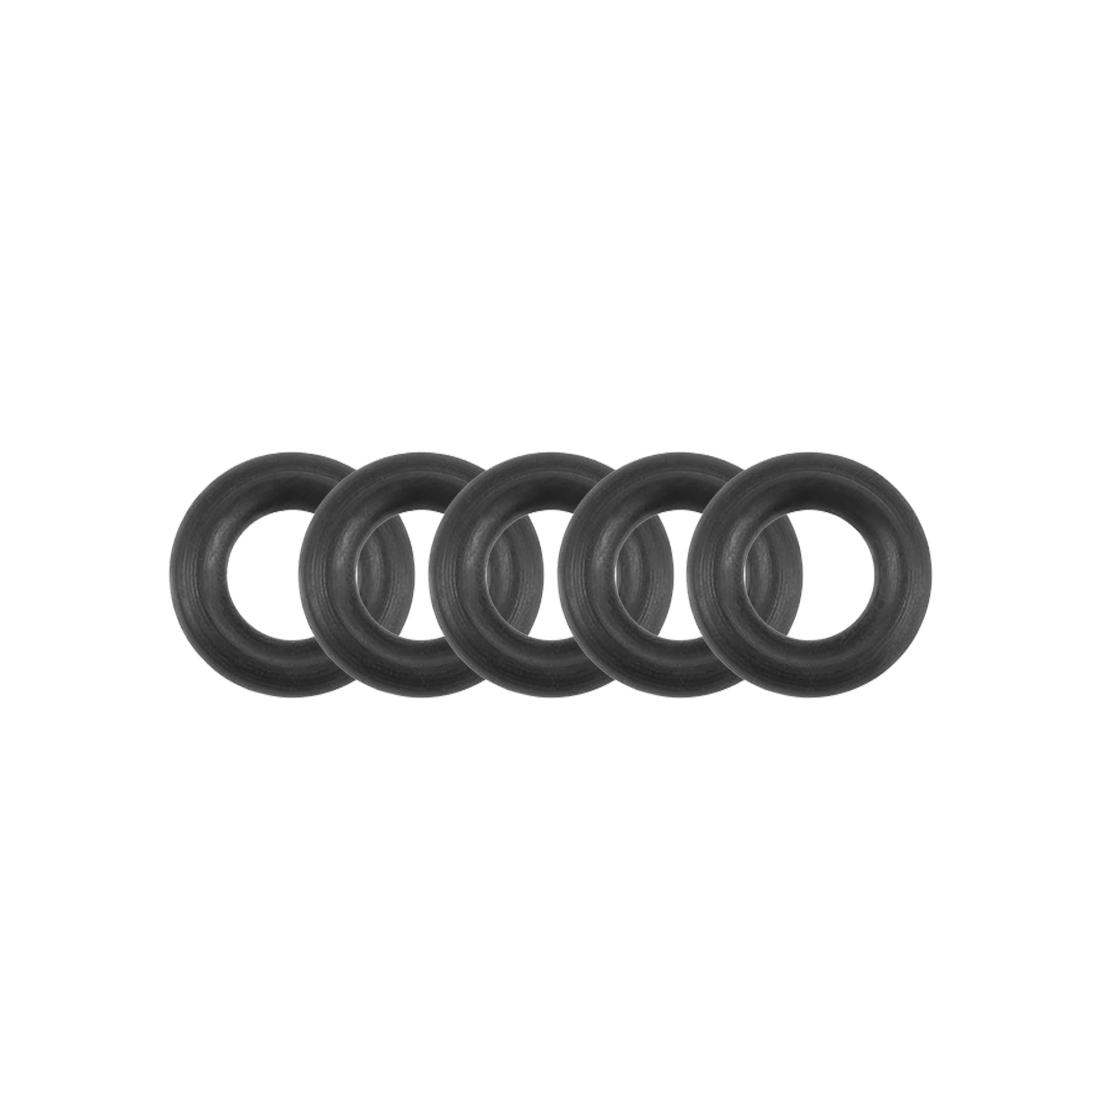 O-Rings Nitrile Rubber 3.55mm x 7.15mm x 1.8mm Round Seal Gasket 5 Pcs